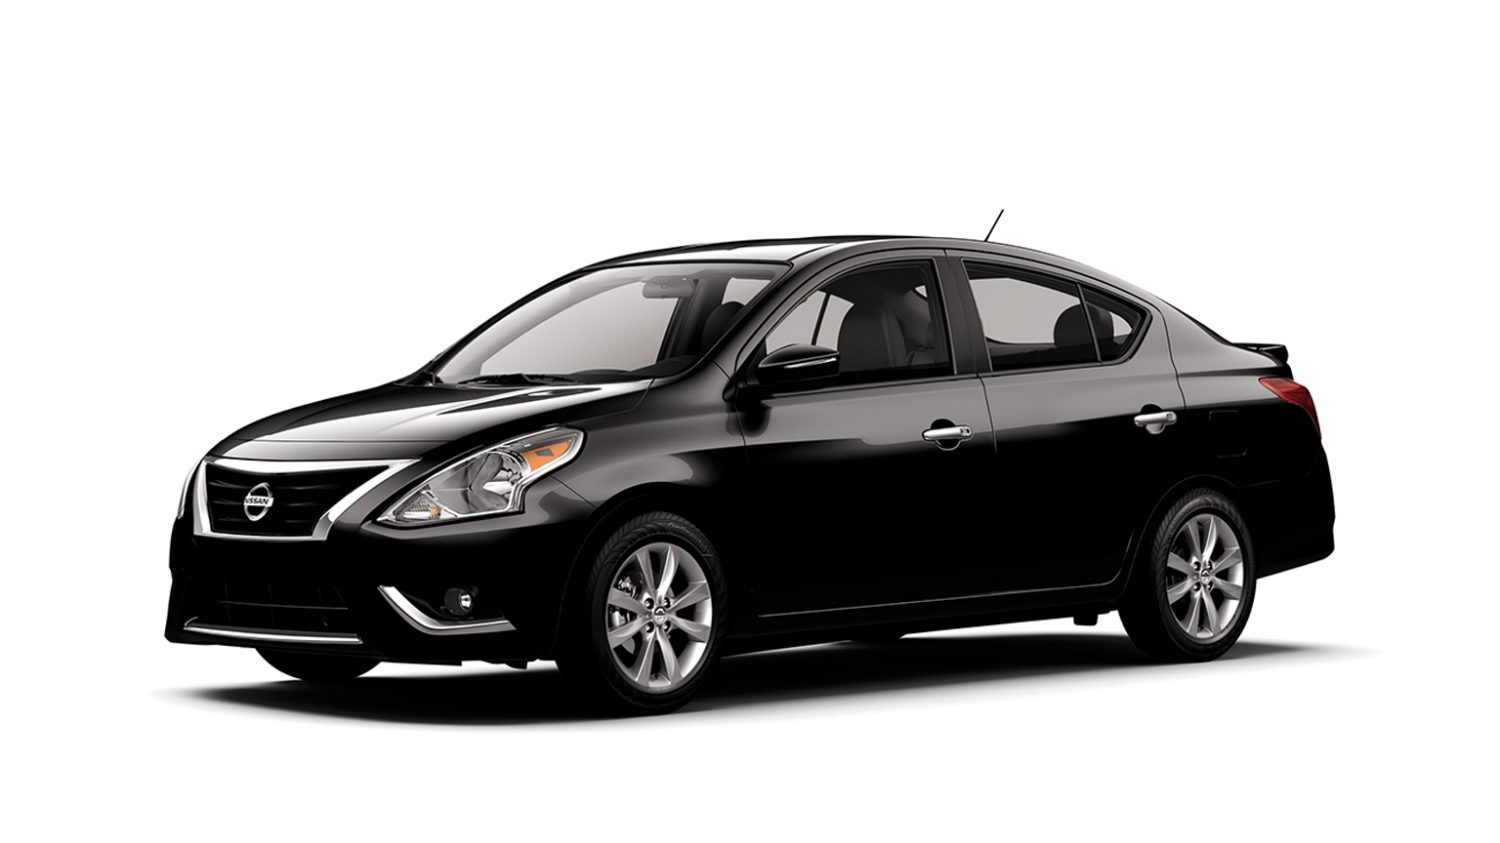 Nissan Sunny Versions & Specifications - Efficient Family Car